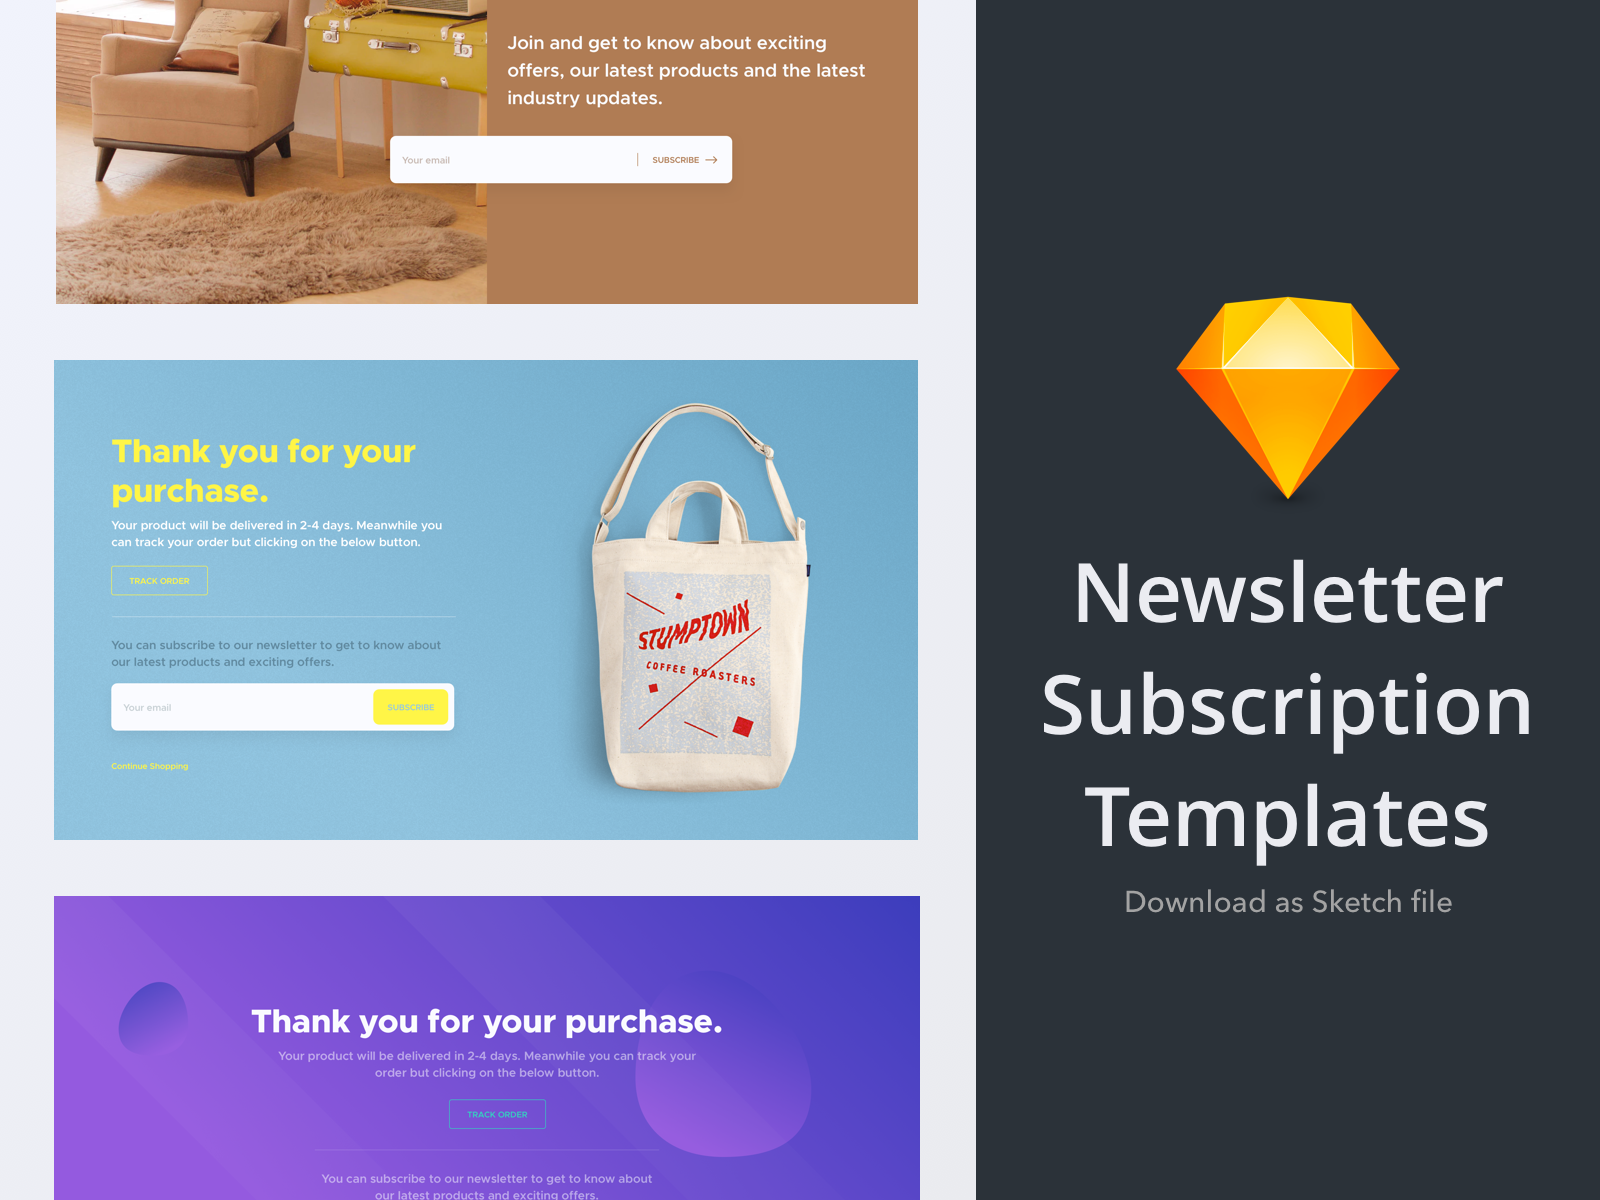 Newsletter subscription templates 4x